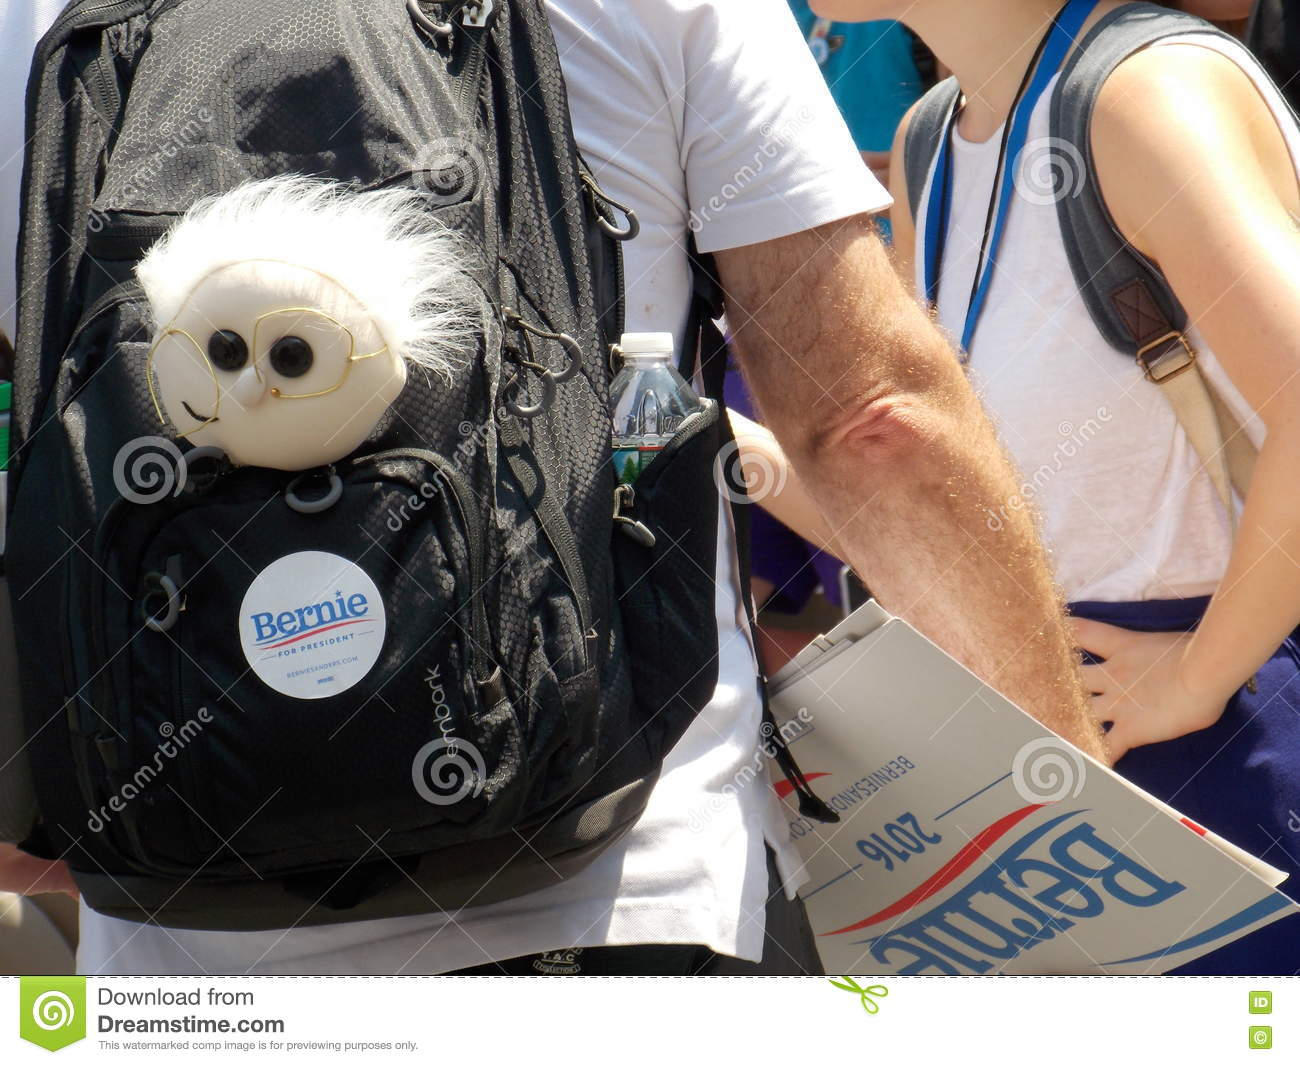 Bernie Sanders Supporter with Bernie Doll and Sign